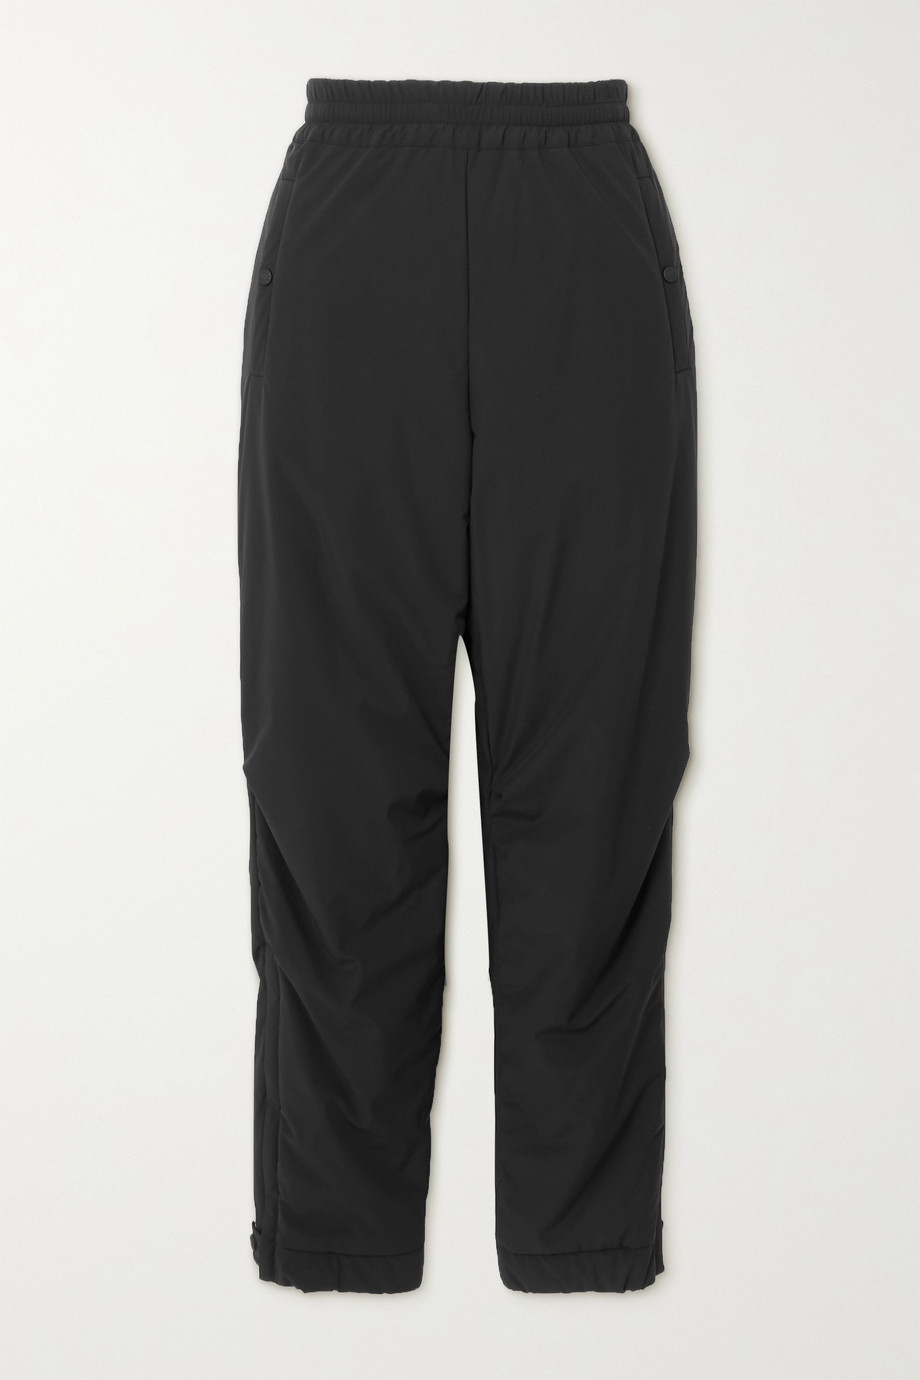 Moncler Grenoble Sportivo padded shell tapered ski pants